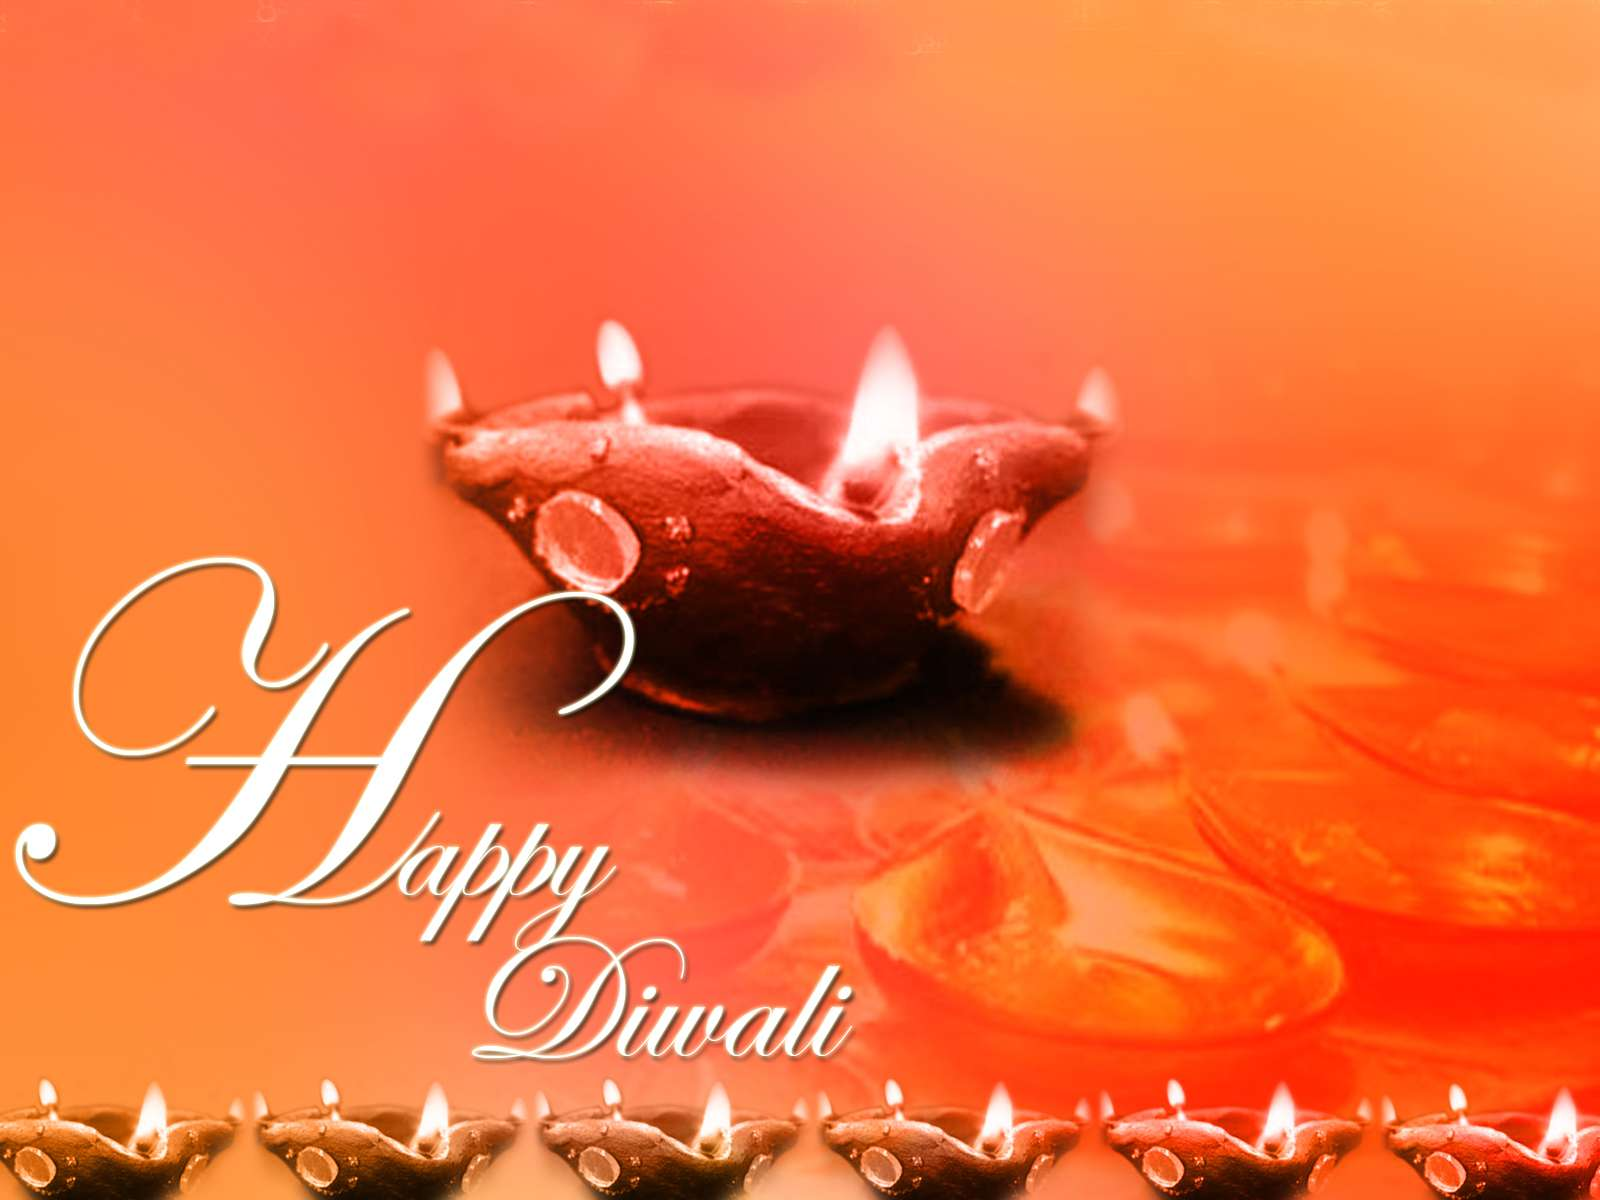 Download Diwali Hd Wallpapers 2016: Download Happy Diwali Hd Photos : Hd Wallpapers